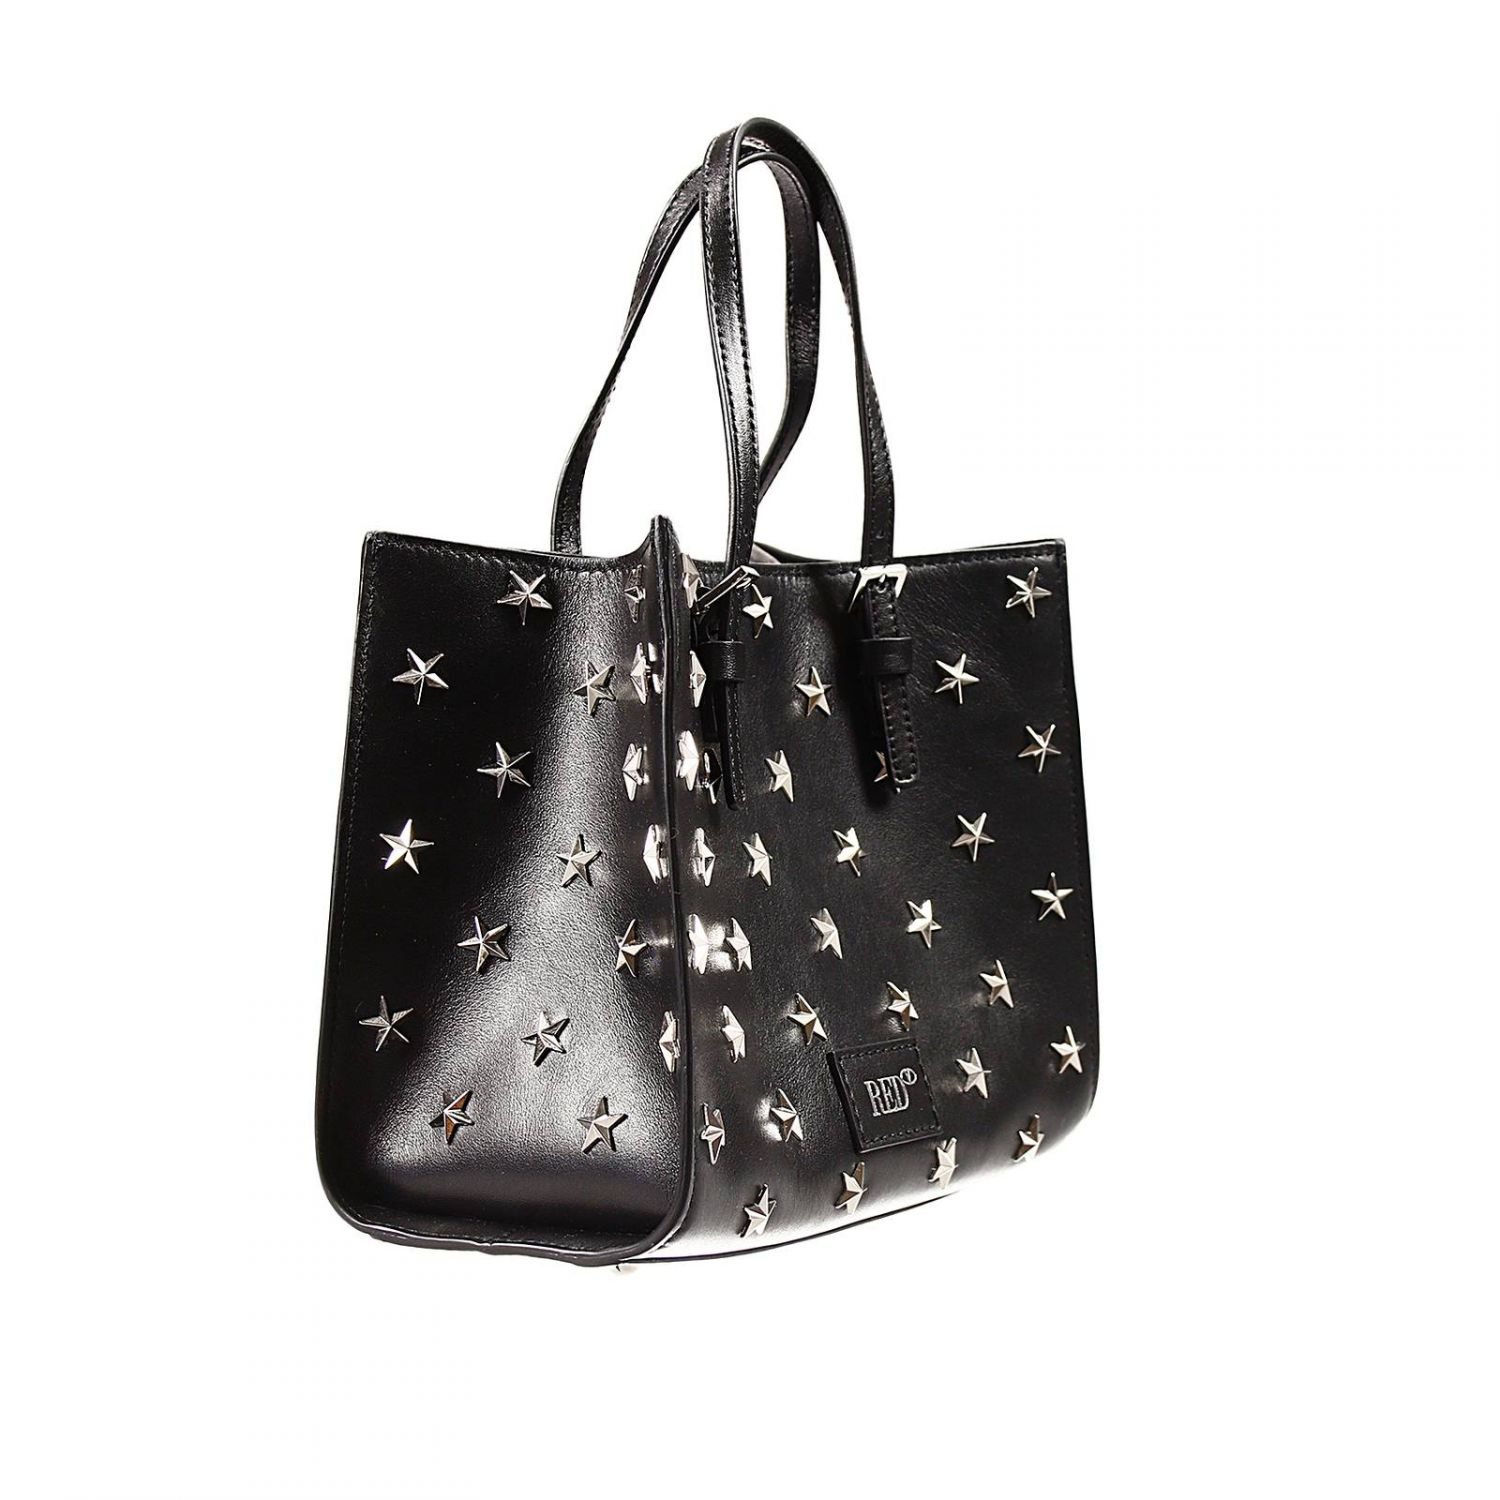 Lyst - Valentino Handbag Bag Shopping Mini Shoulder Leather With Star Studs in Black